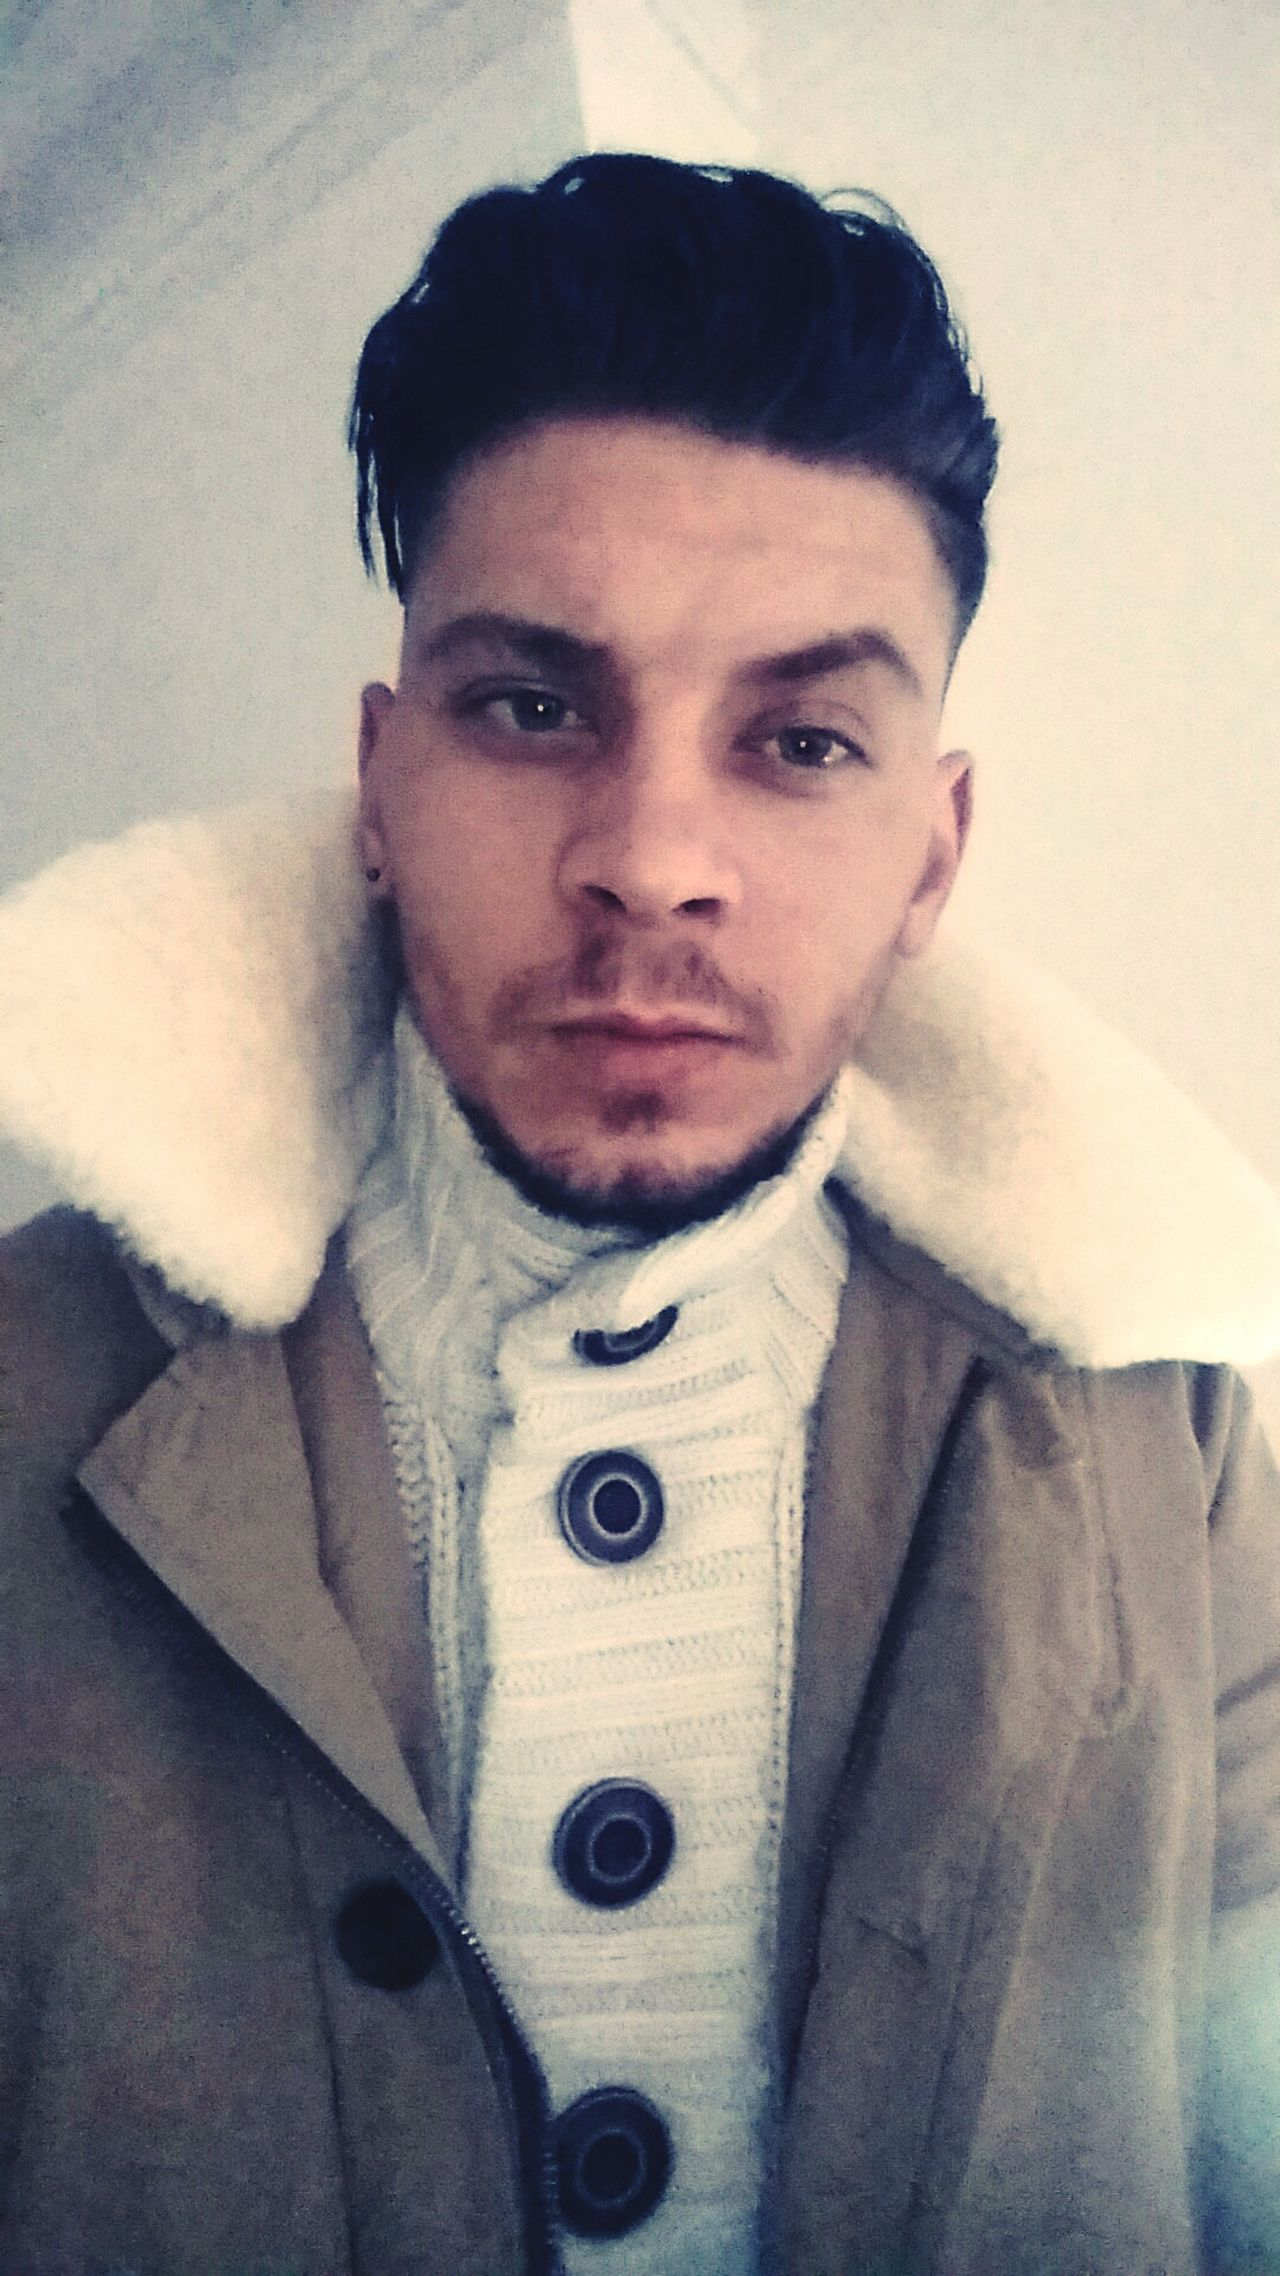 CuzWinter Snapchat Selfie ✌ Cold Winter ❄⛄ Portrait One Man Only Warm Clothing That's Me✌️